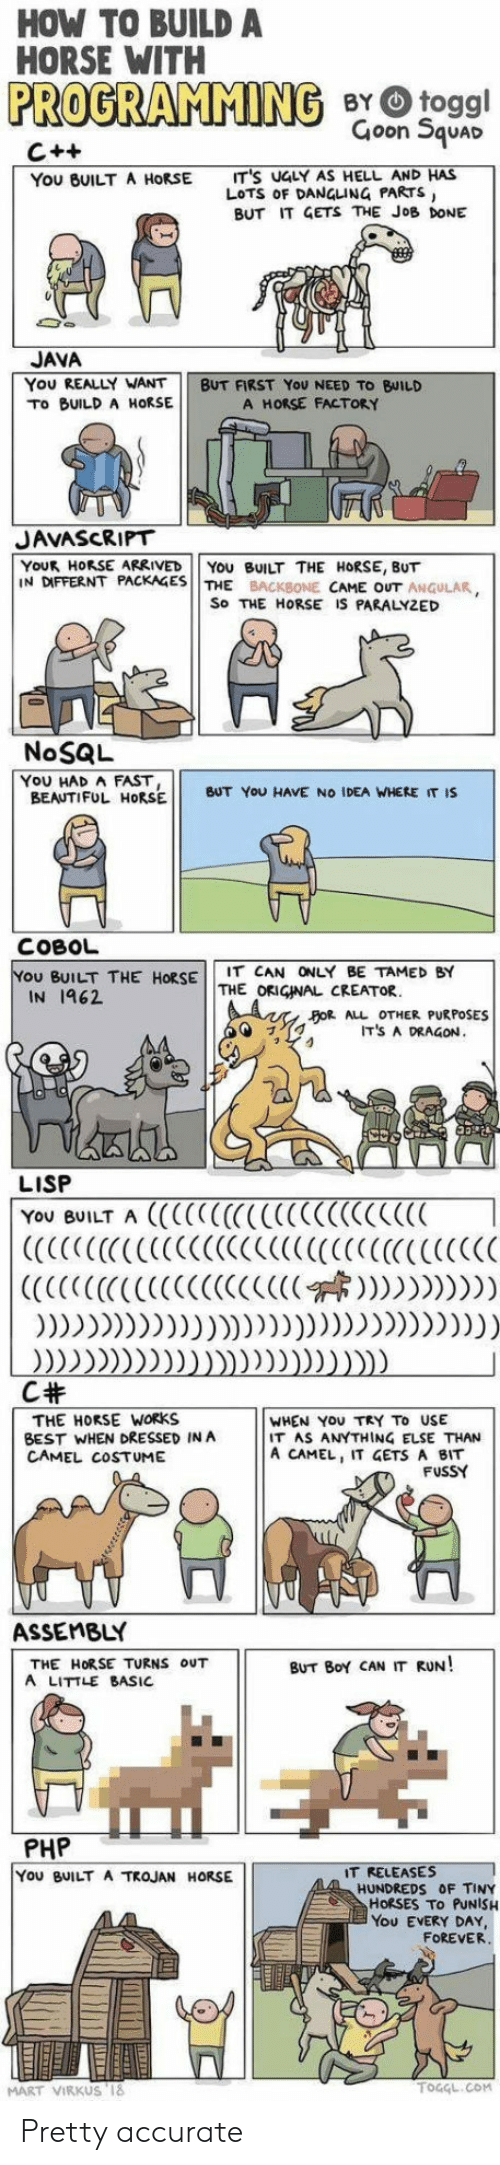 Beautiful, Horse, and How To: HOW TO BUILD A  HORSE WITH  PROGRAMMING  9  You BUILT A NORITS UCY AS HEL AND  TO BUILD A HoR  JAVASCRIPT  NKAS SE THELYZED  6  NoSQL  BEAUTIFUL E BUT You HAVE No IDEA WHERE IT IS  YoU BUILT THE HORSE IT CAN ONLY BE TAMED BY  YOu BUILT A ((CCCCCCCCCCCCC  c#  ASSEMBLY  PHP  5  3 Pretty accurate